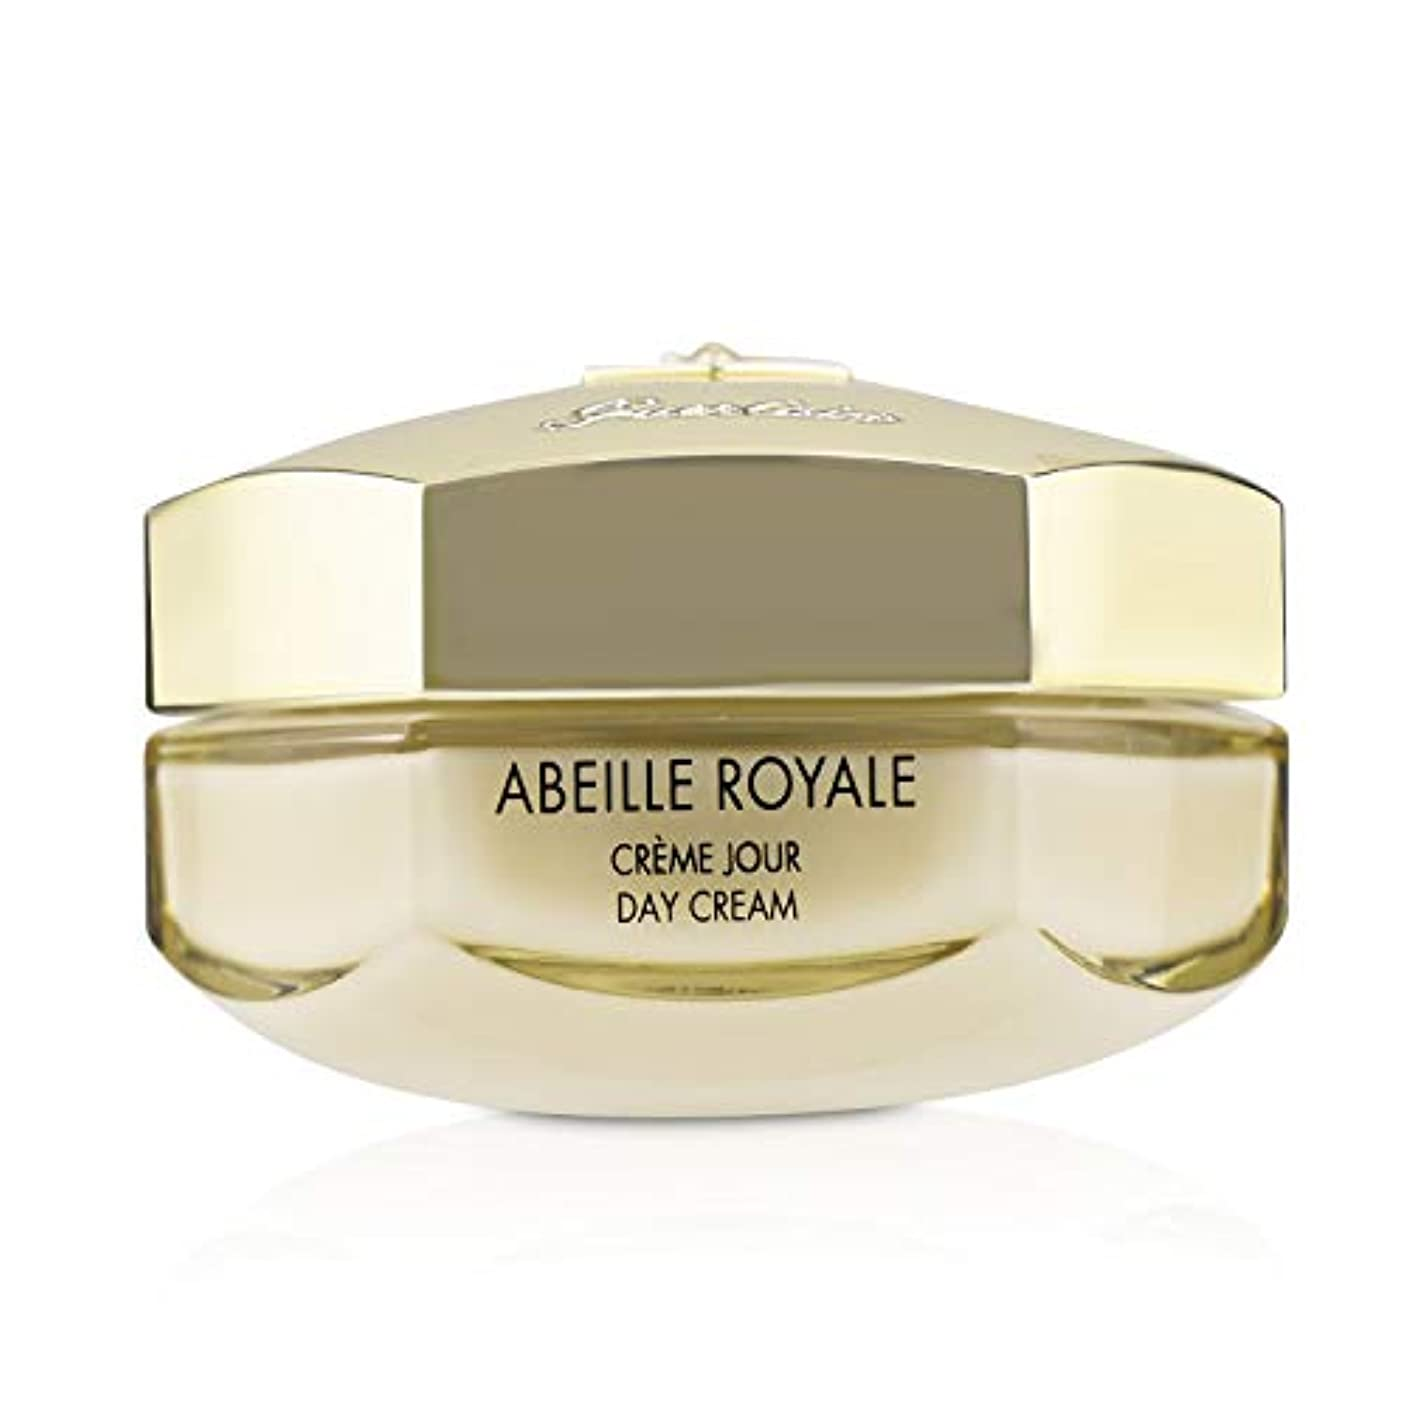 ゲラン Abeille Royale Day Cream - Firms, Smoothes & Illuminates 50ml/1.6oz並行輸入品